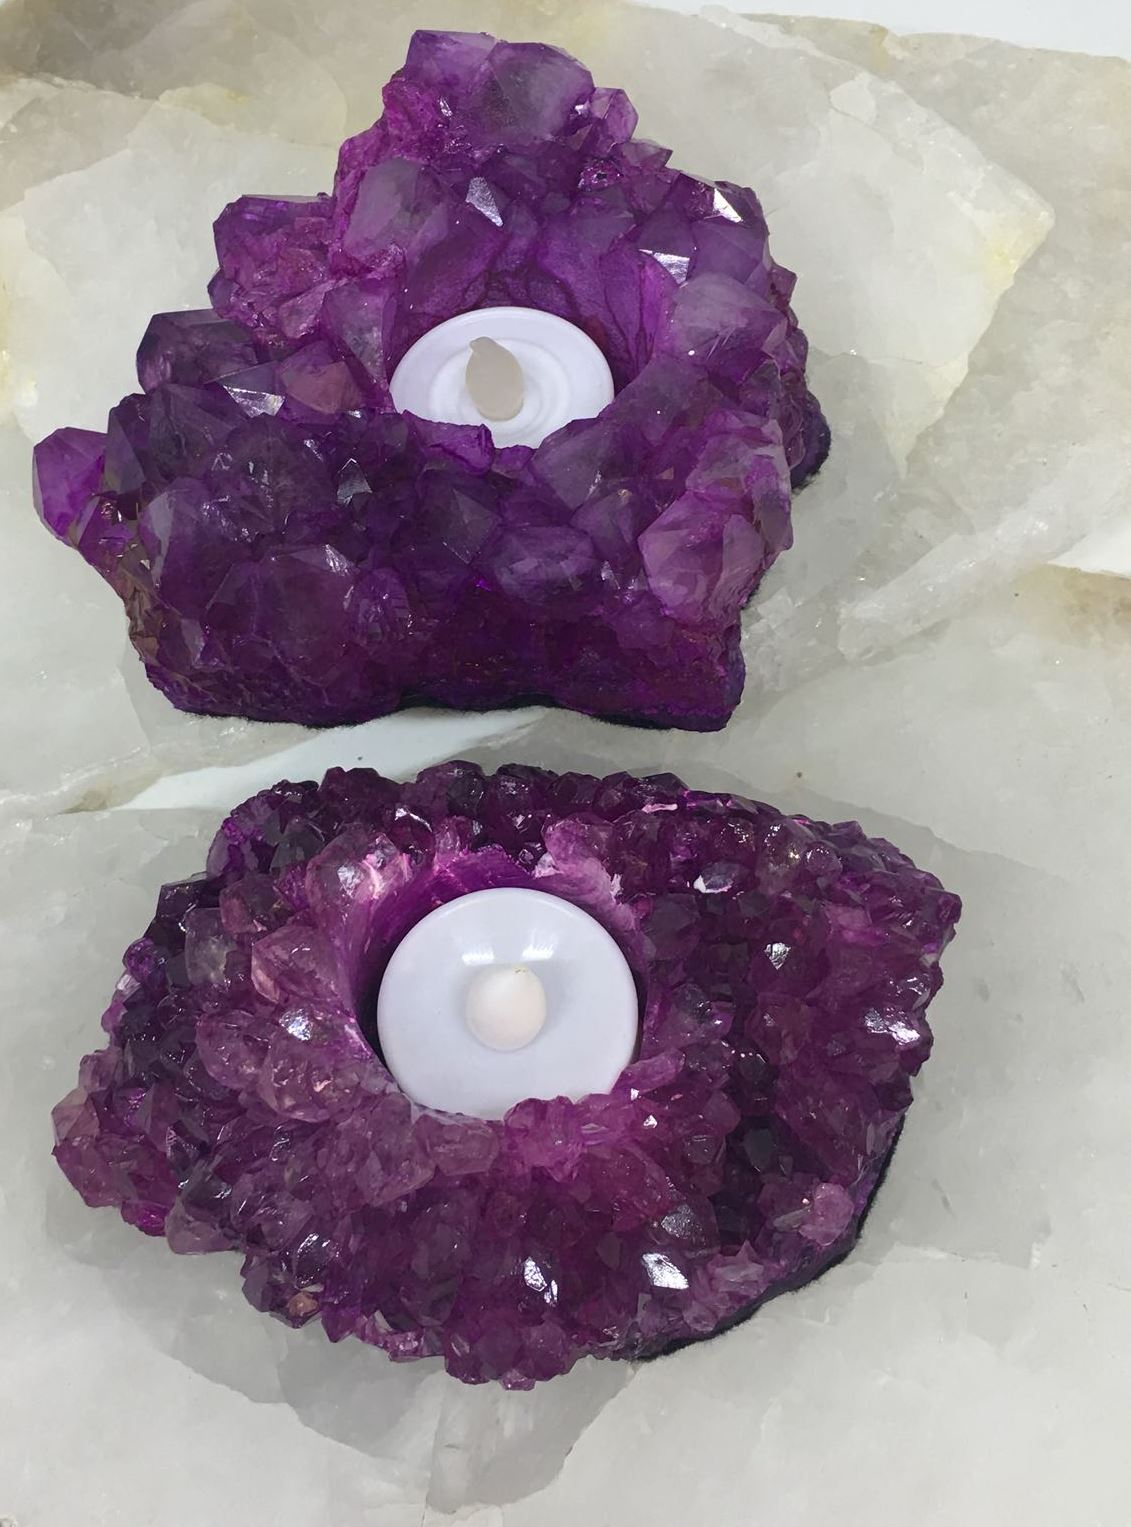 Stones from Uruguay - Pink Dyed Amethyst Druzy Cluster Candle Holder  Tealight